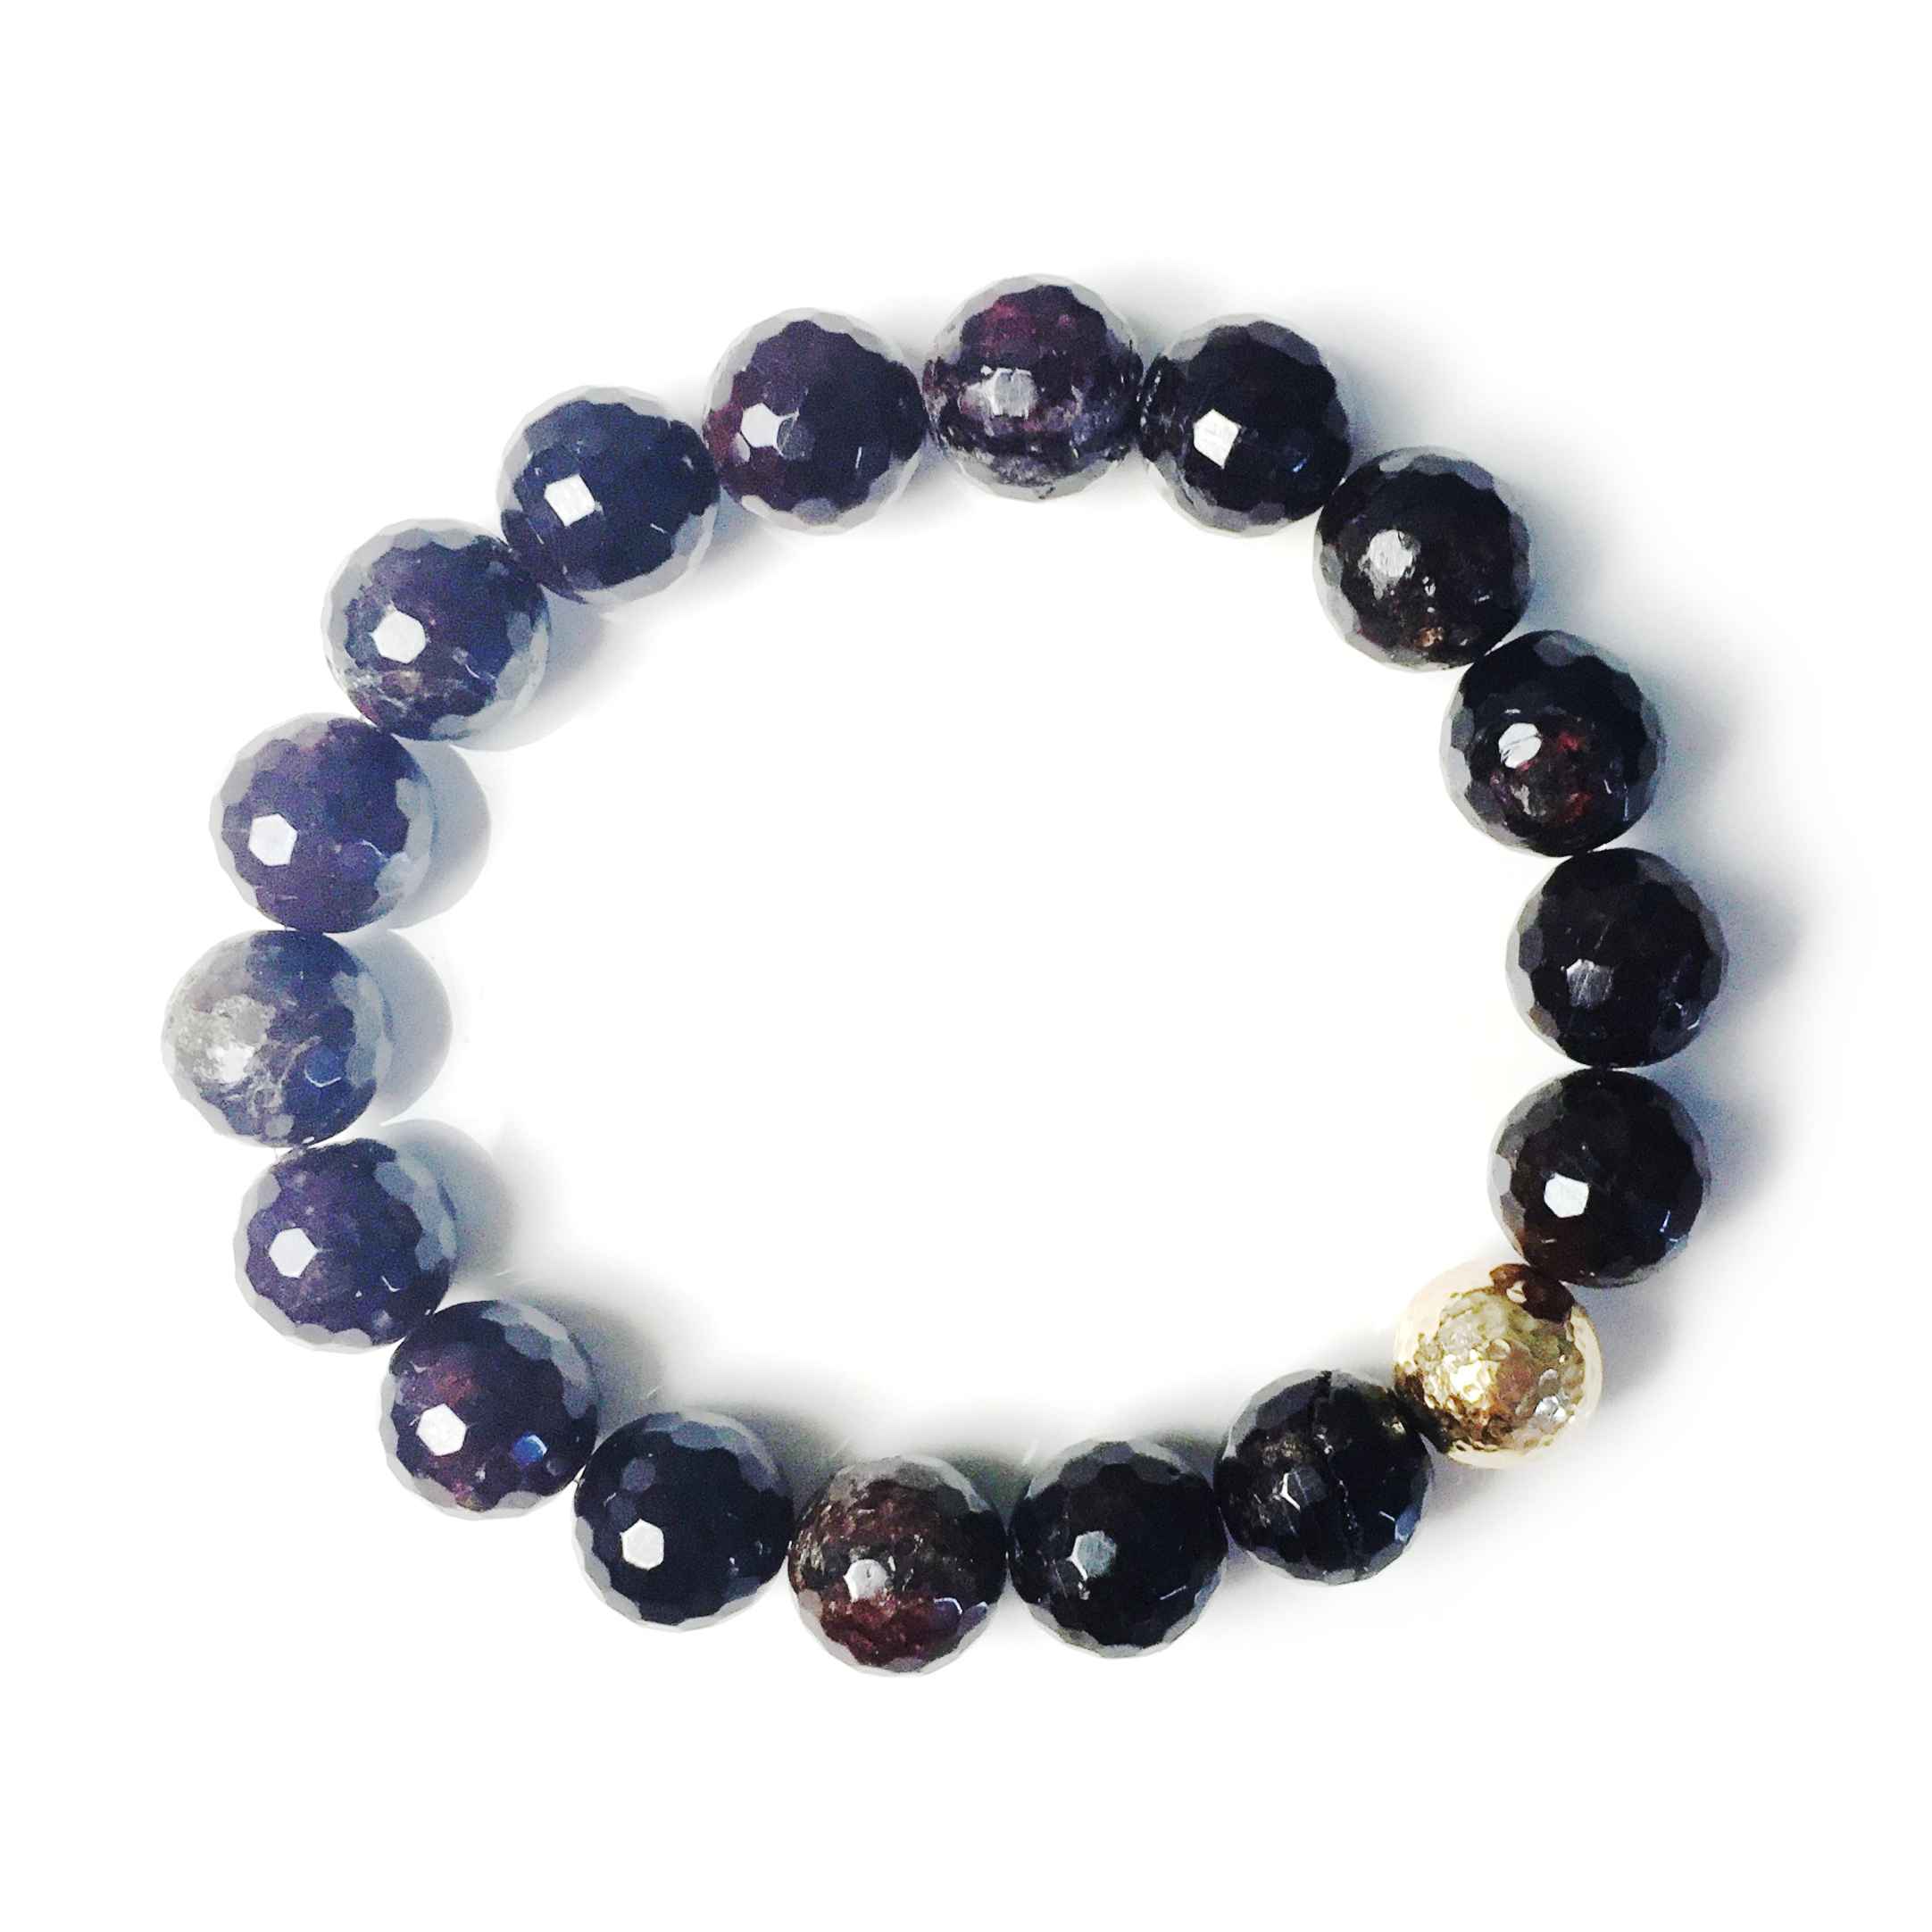 classic stretch bracelet in dark garnet, $85